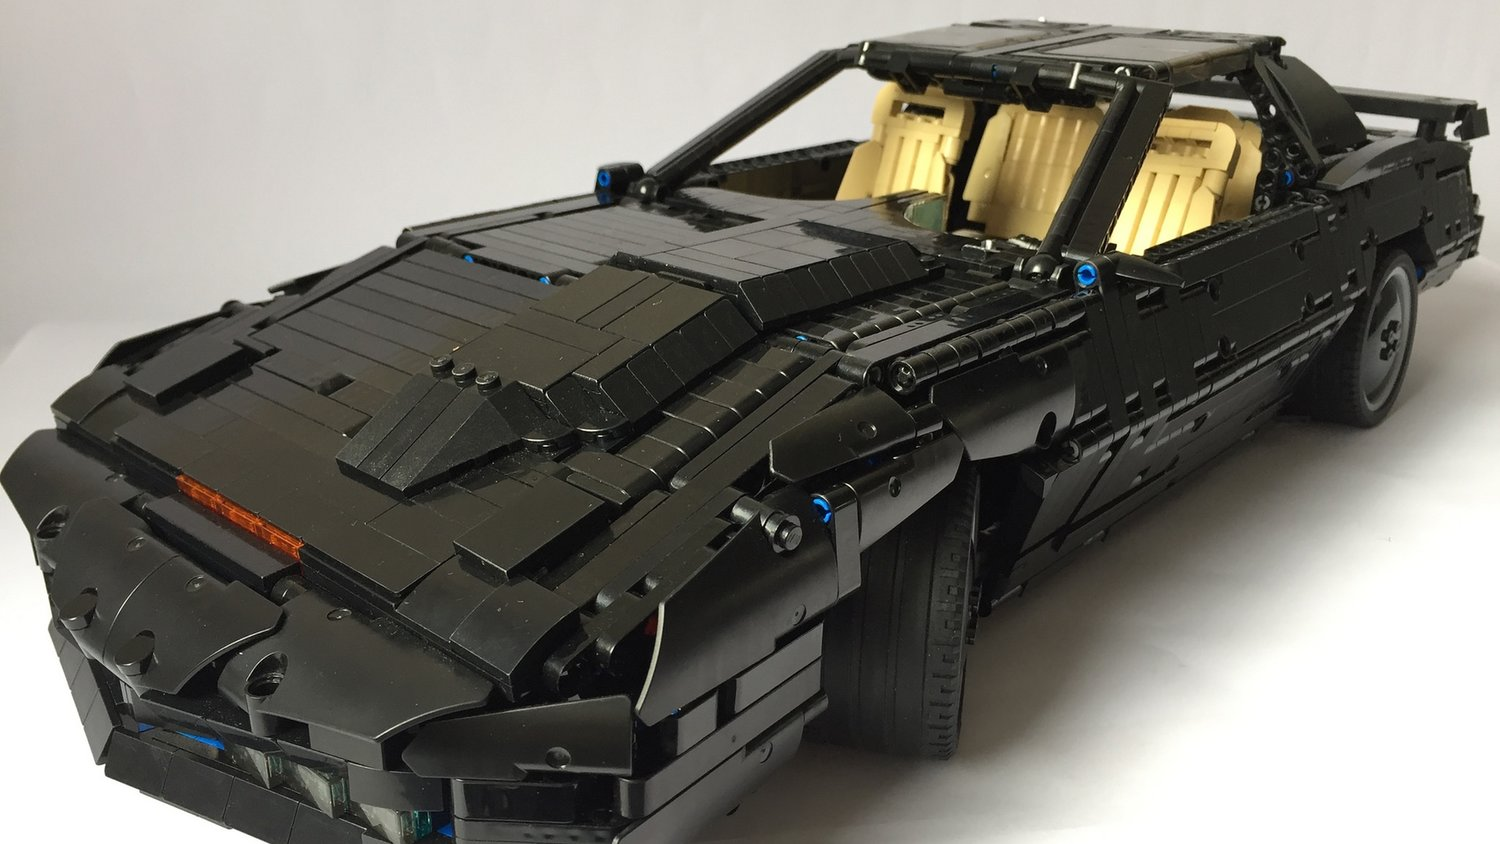 Turn Your Car into K I T T  With This KNIGHT RIDER Inspired